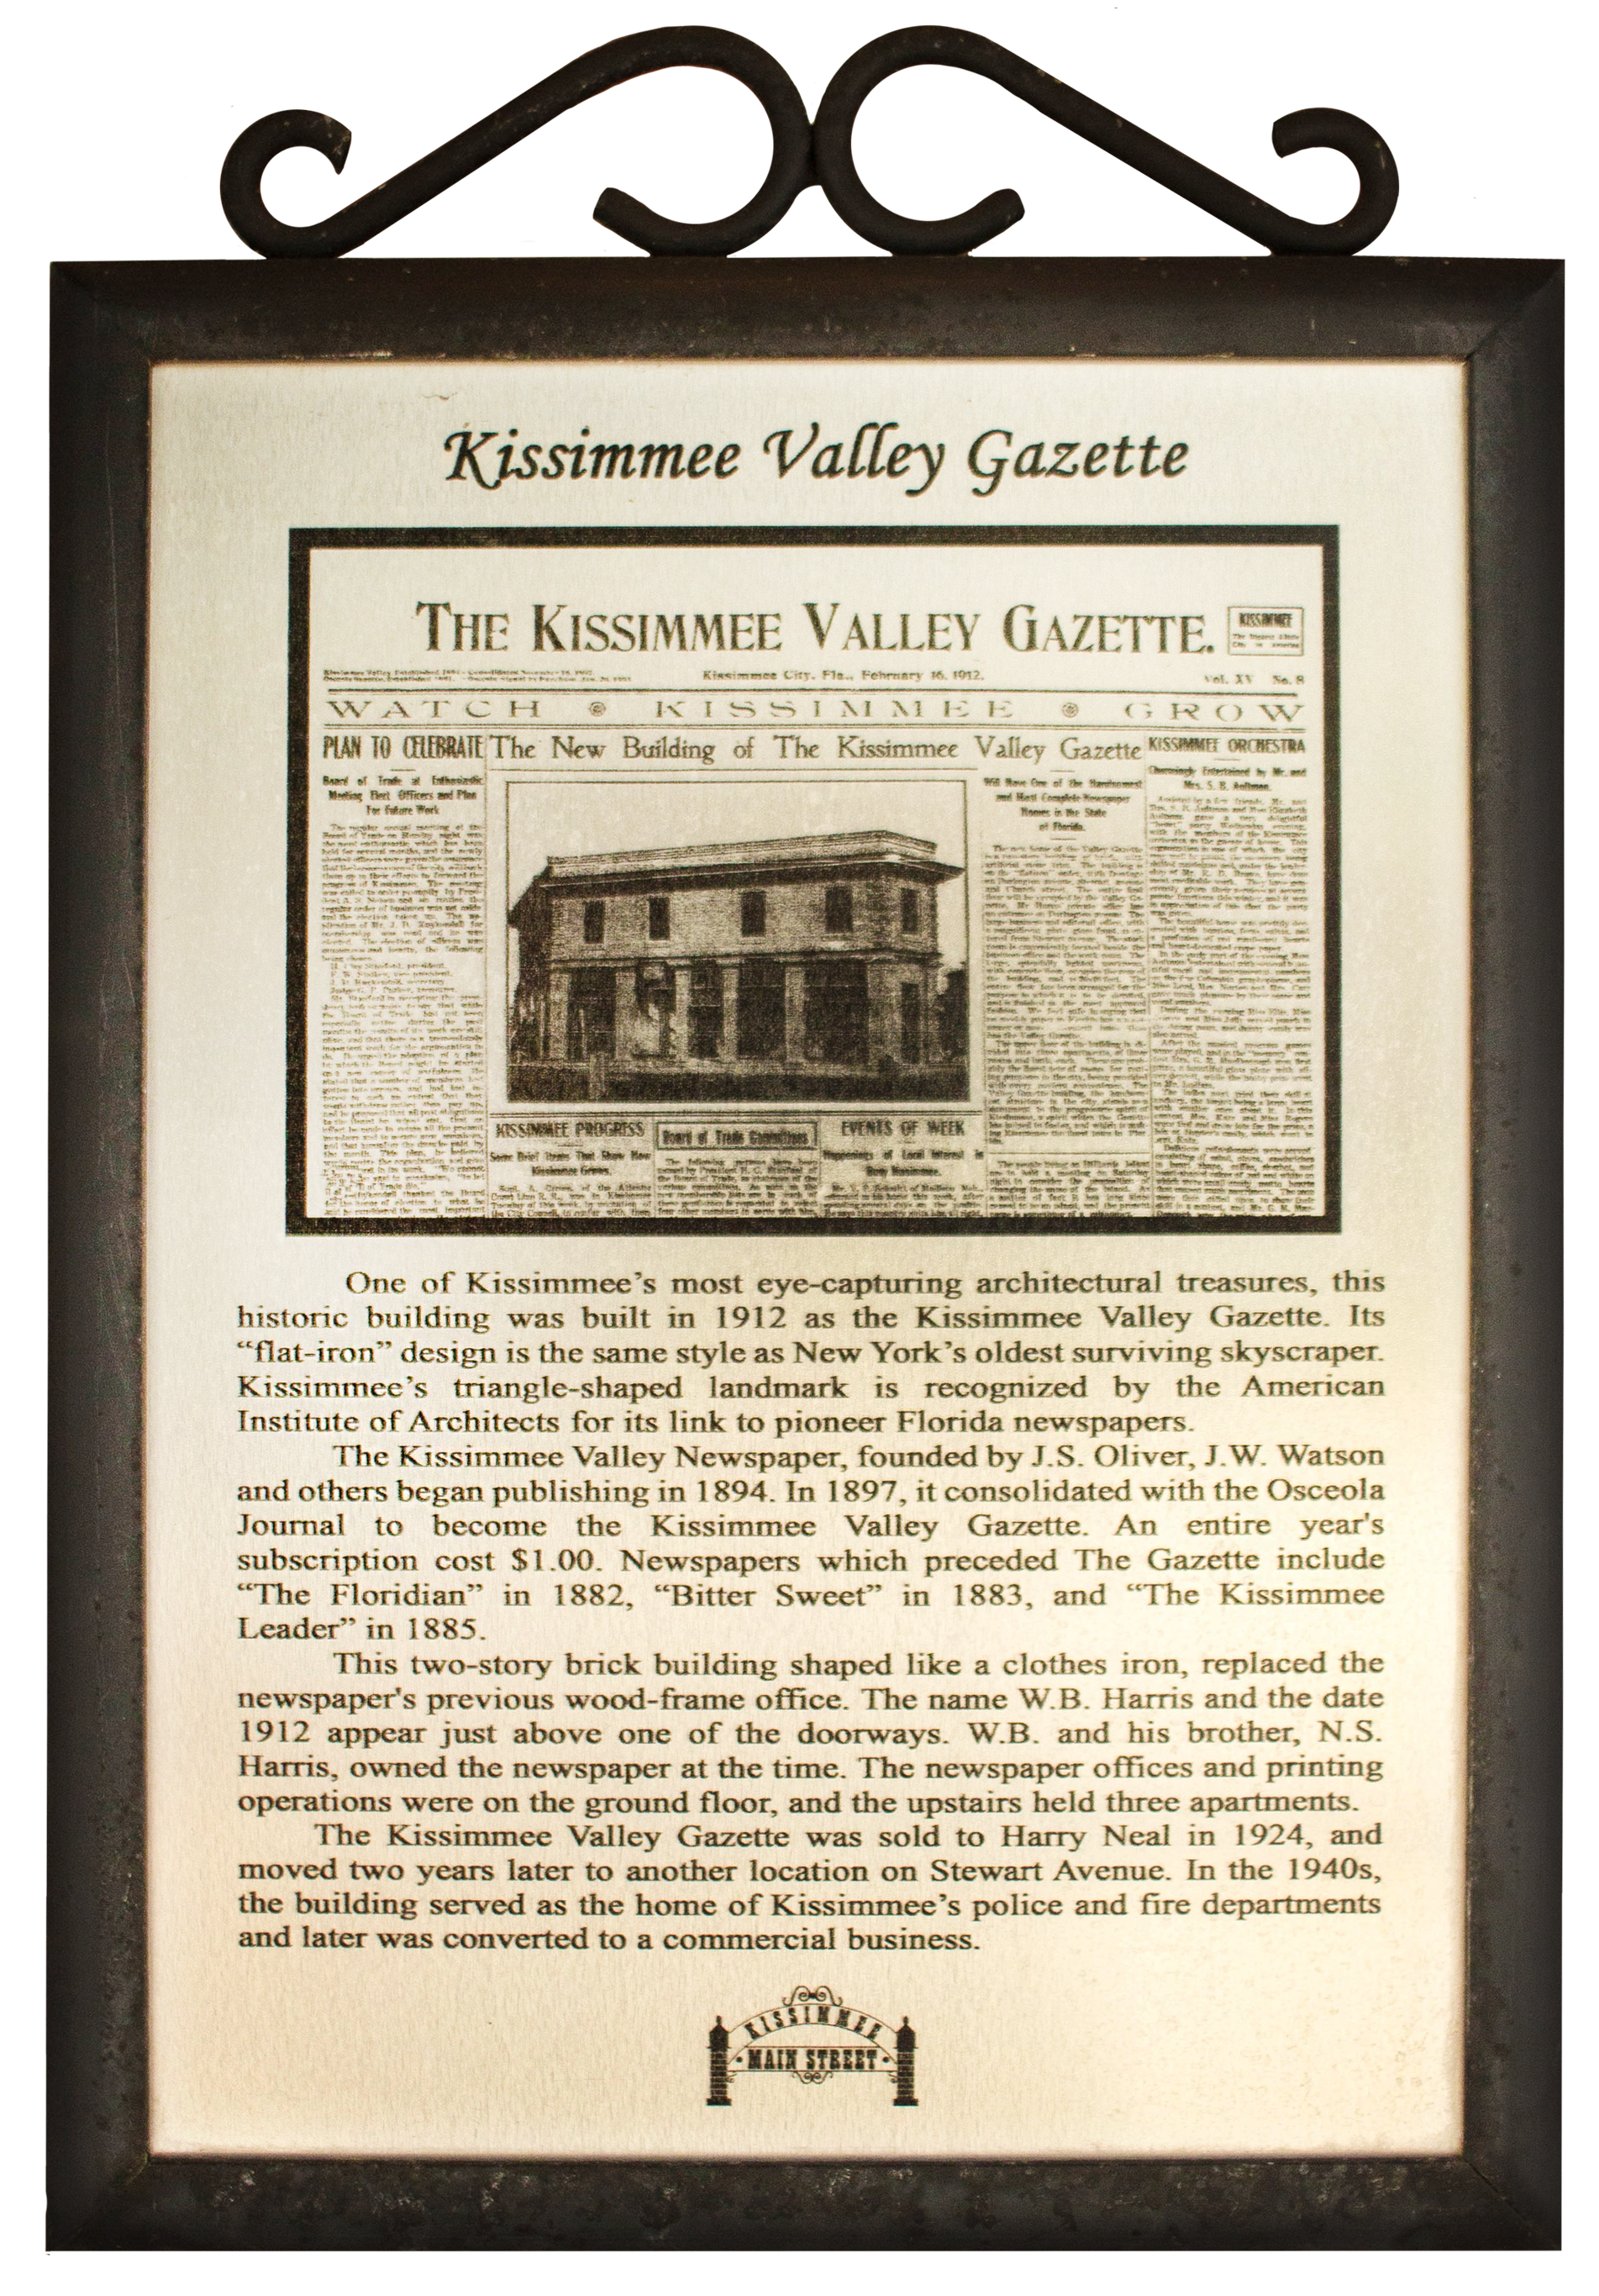 Kissimmee Valley Gazette